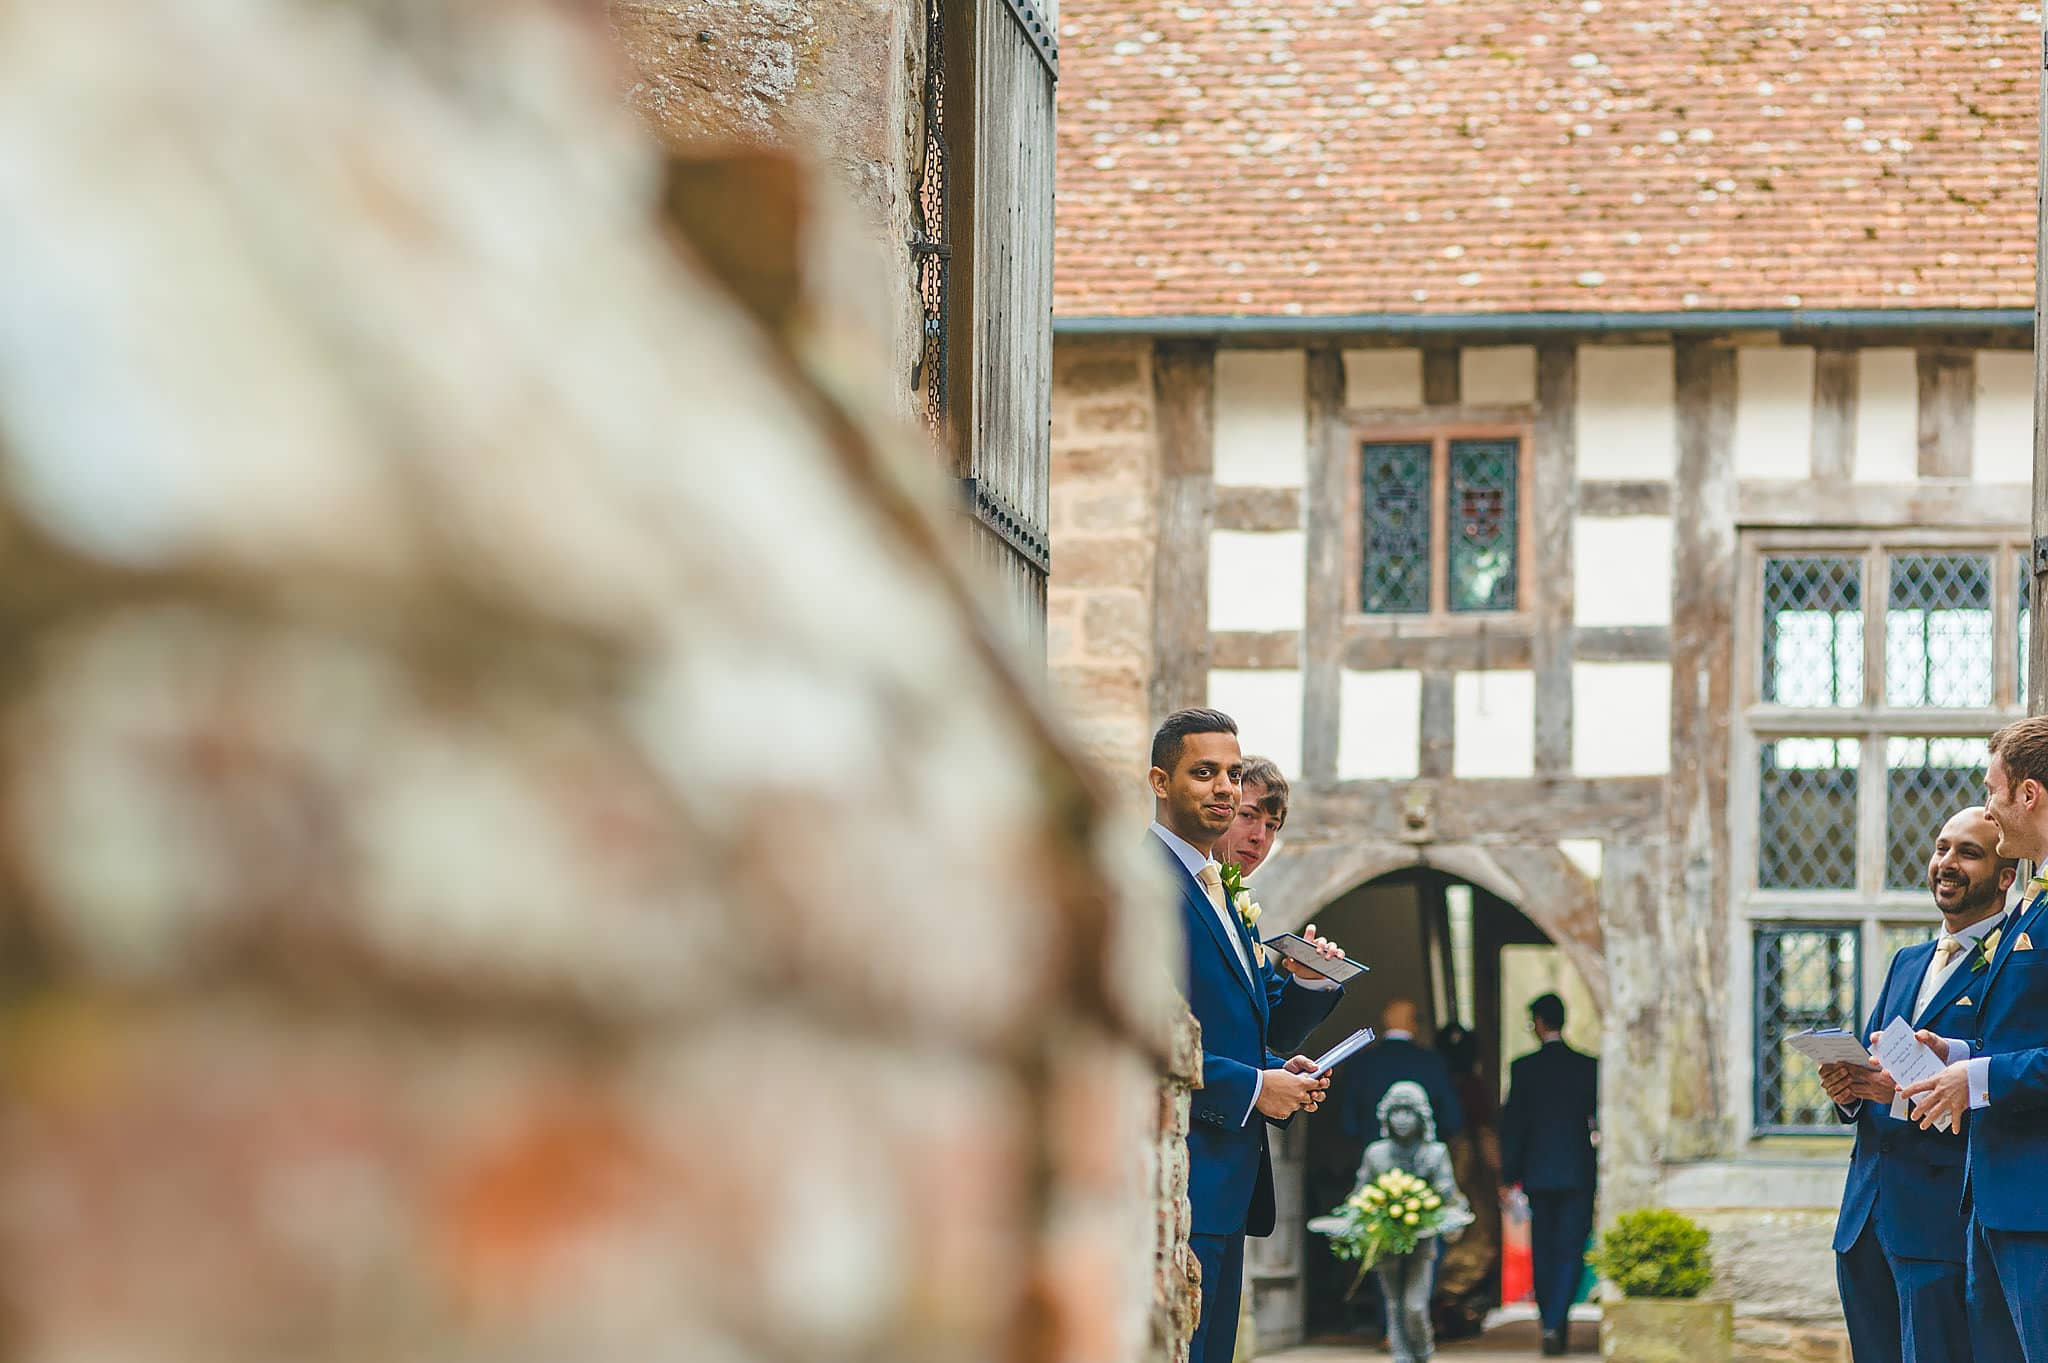 birtsmorton court wedding 18 - Sheena + Lee | Birtsmorton Court Wedding